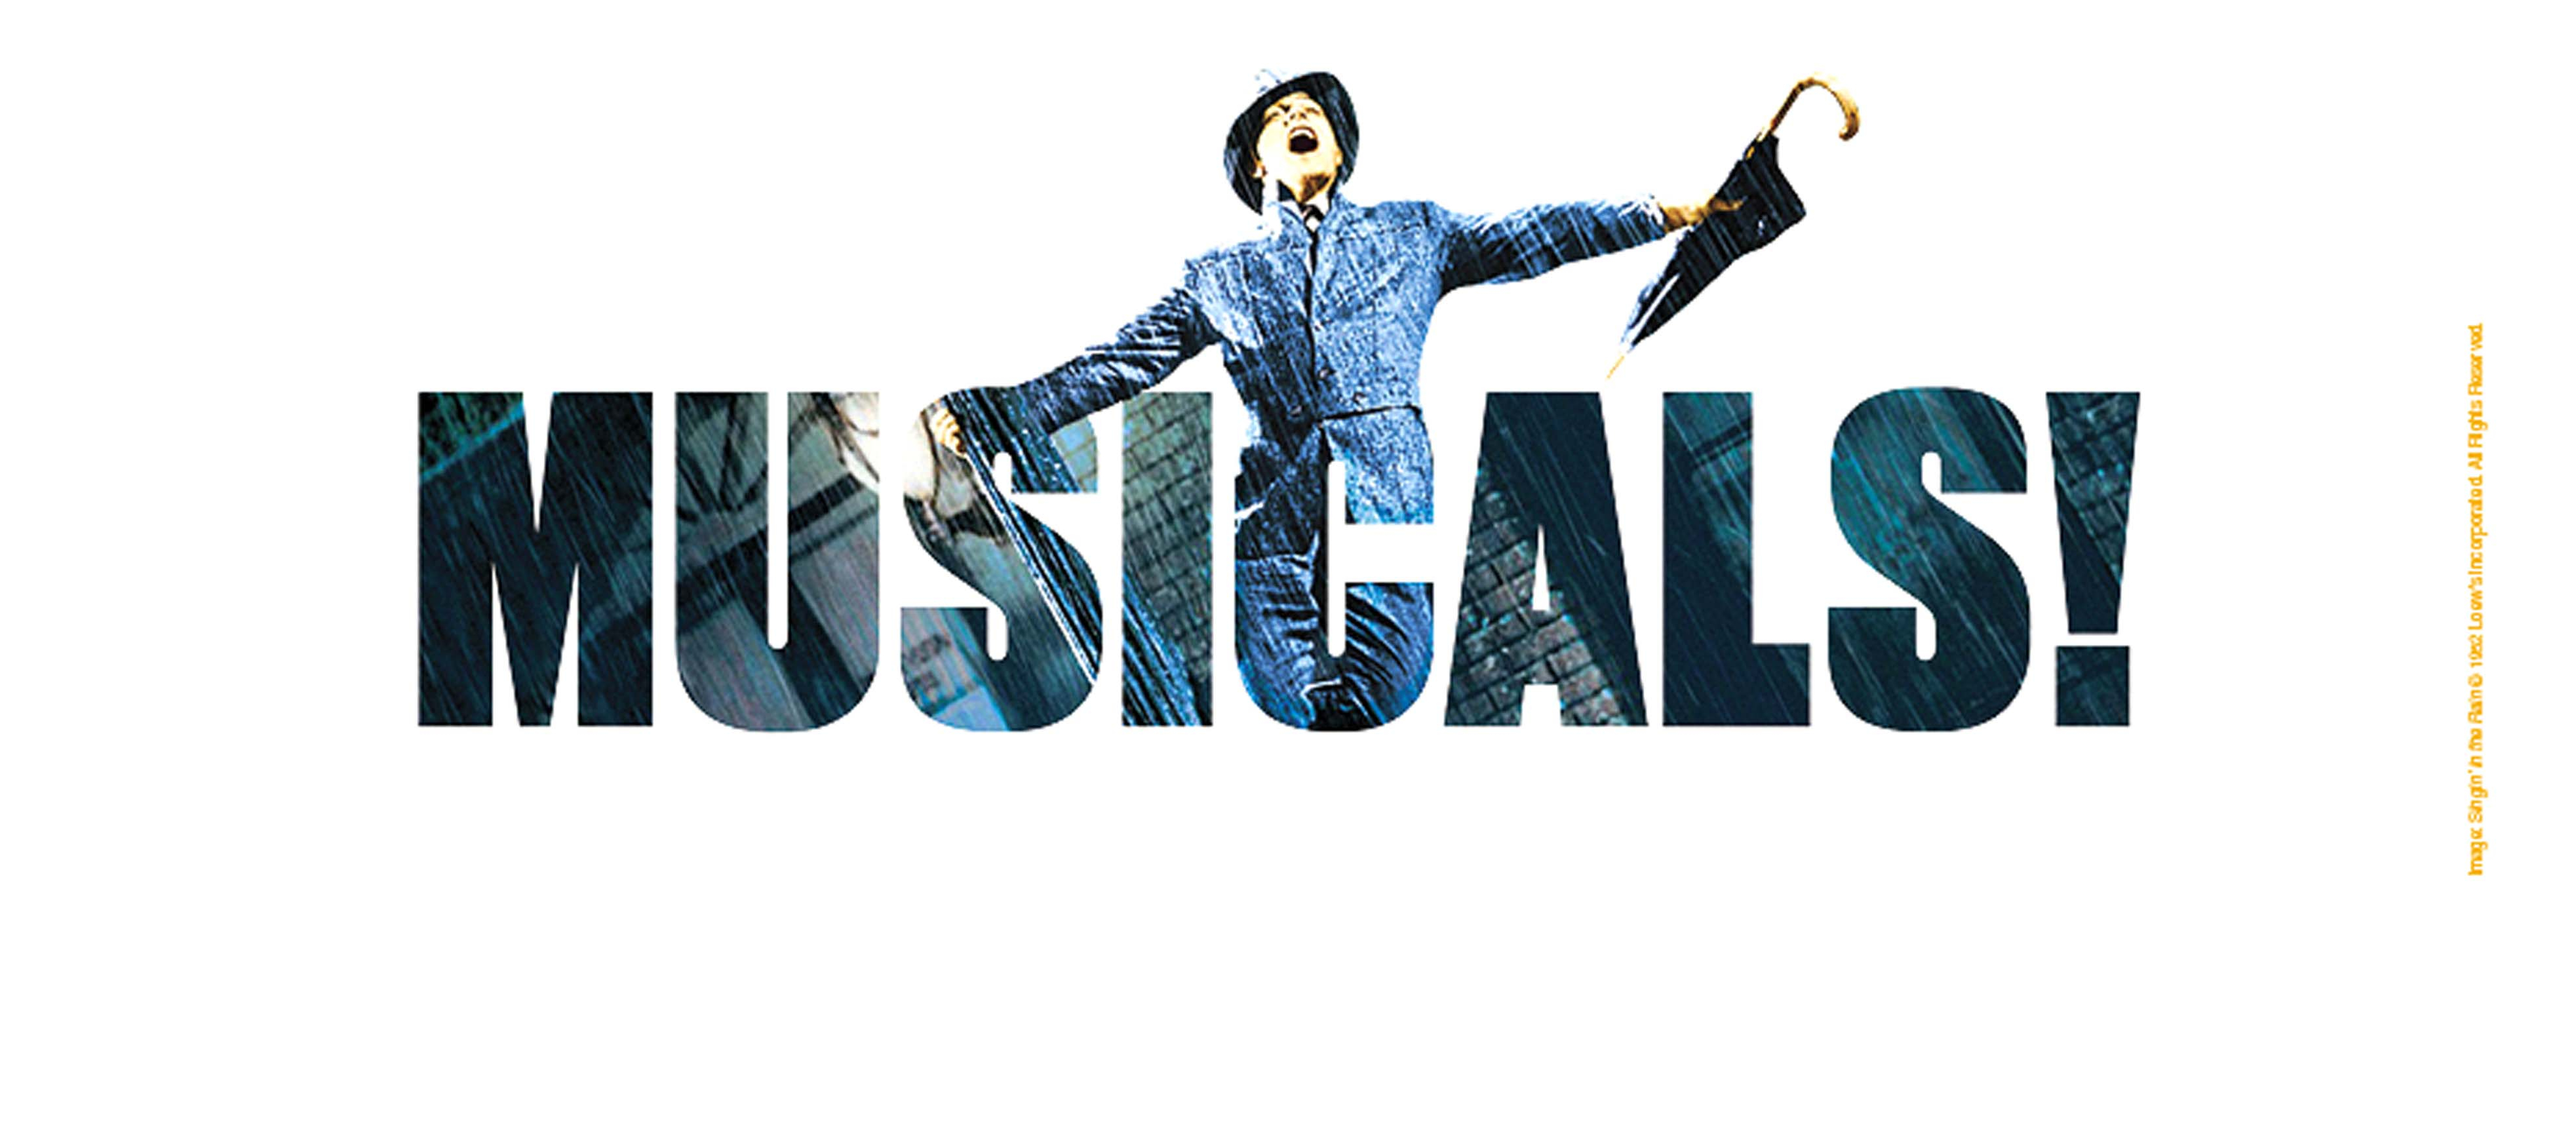 Musicals! The Greatest show on Earth